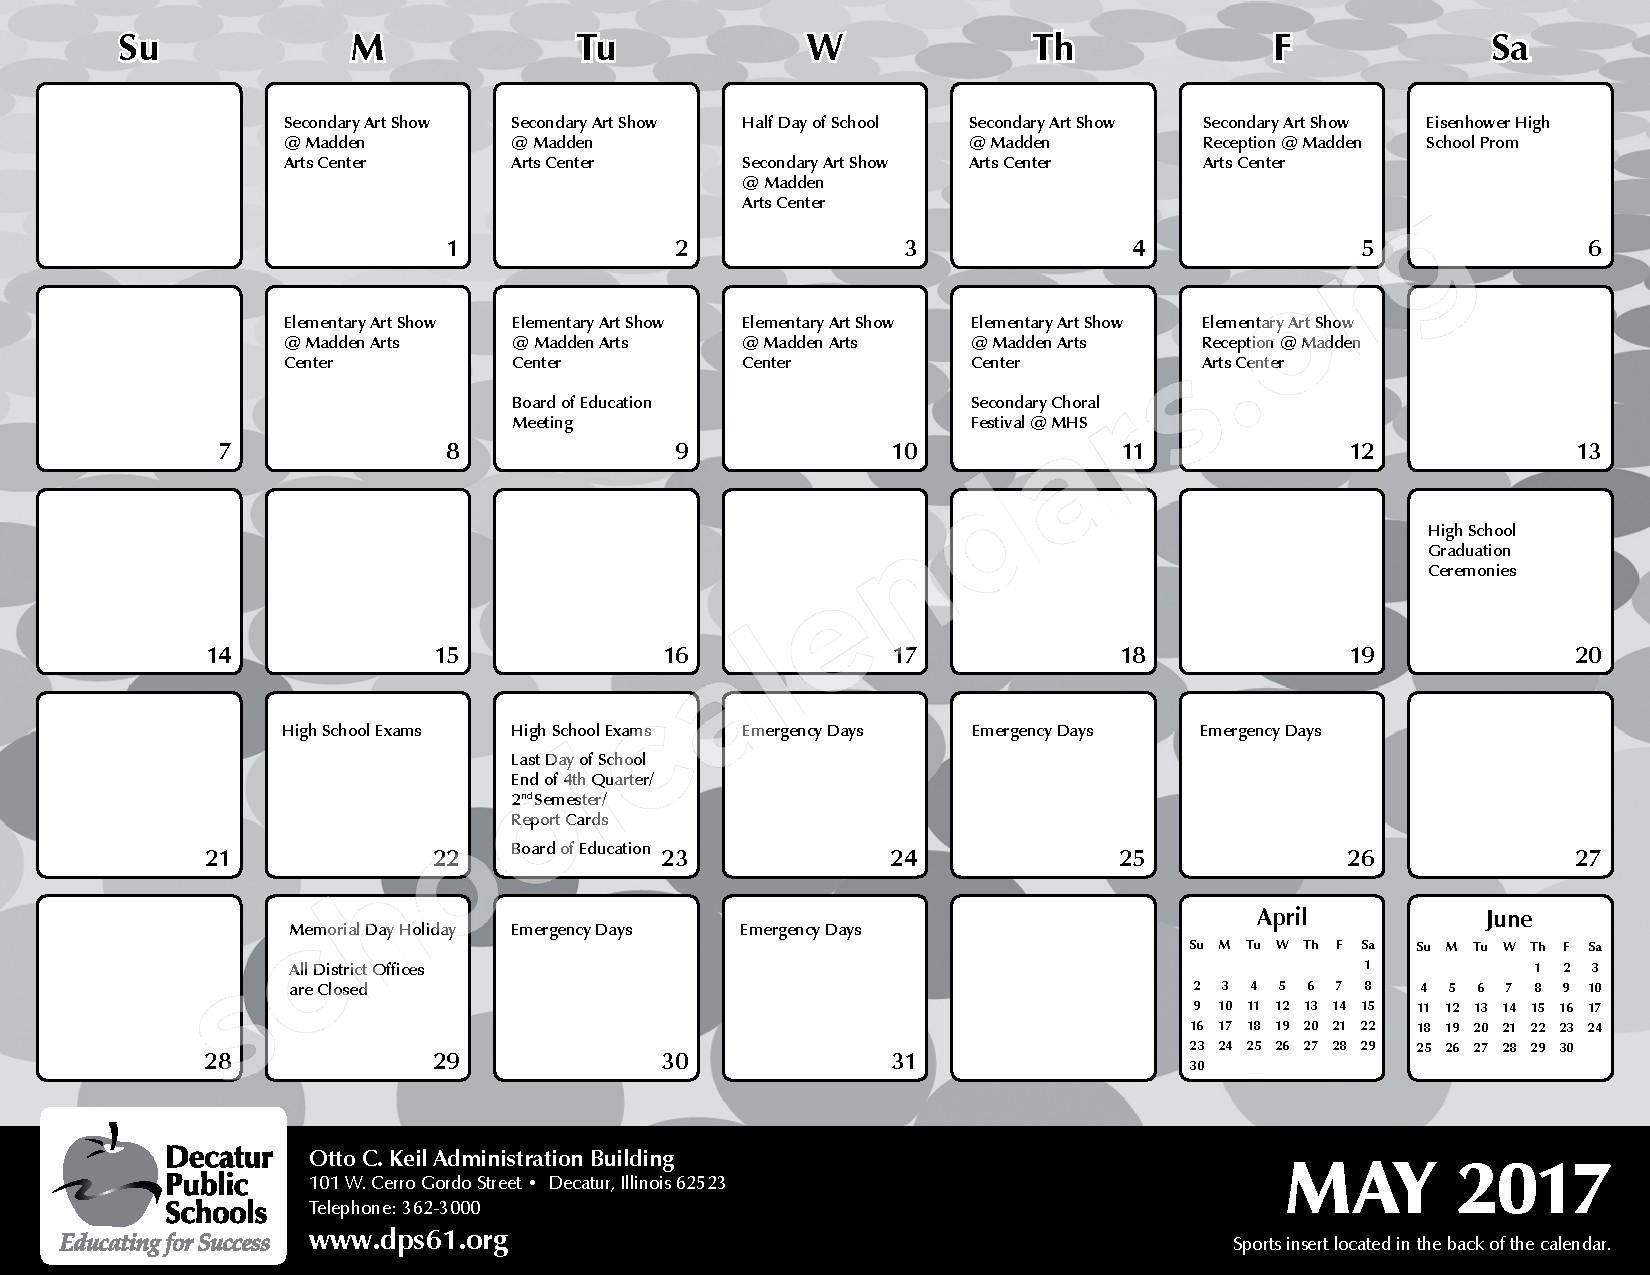 2016 - 2017 District Calendar – Decatur School District 61 – page 23